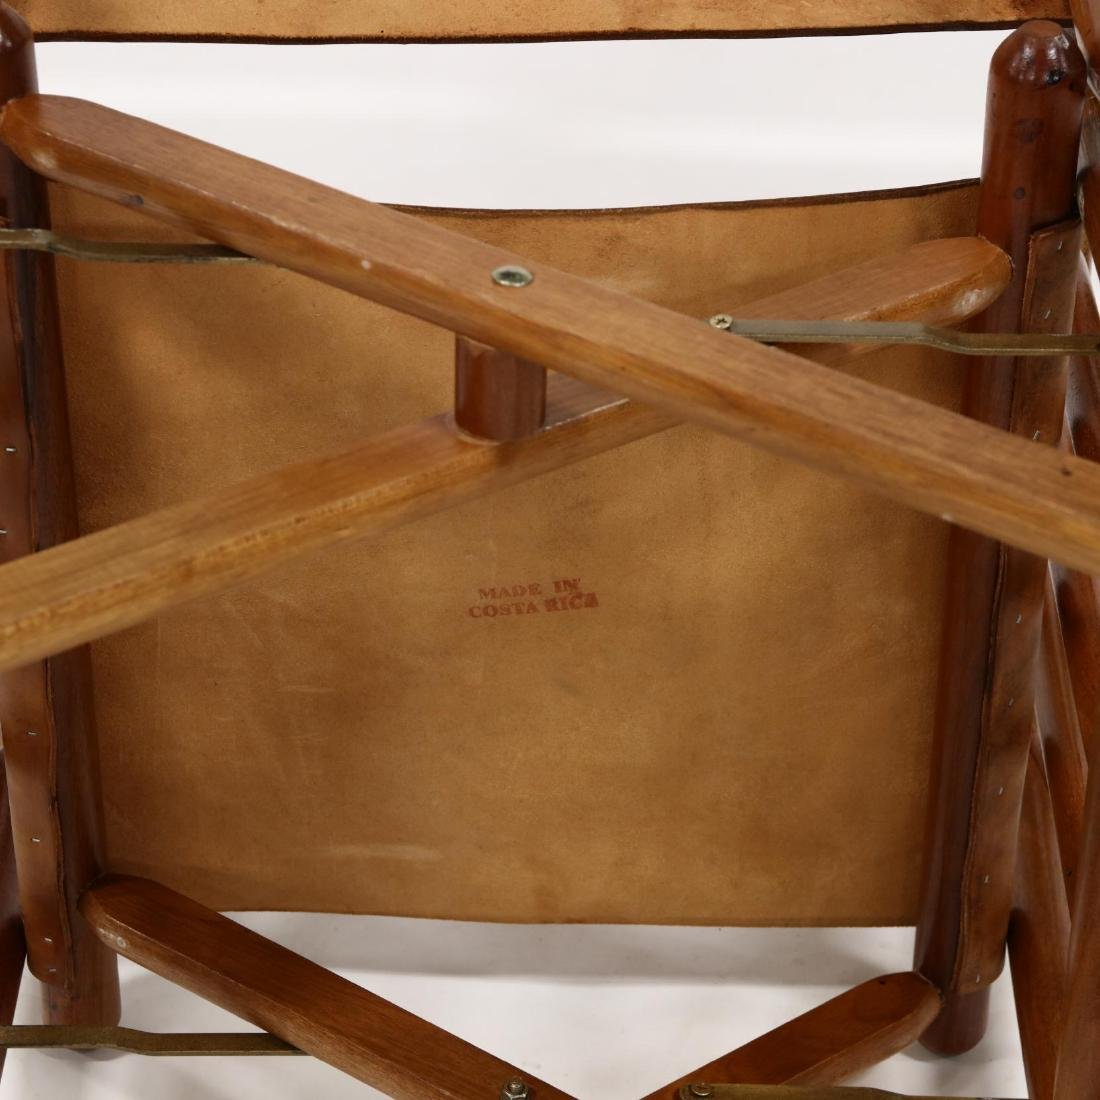 Pair of Modern Teak and Leather Campaign Rocking Chairs - 5